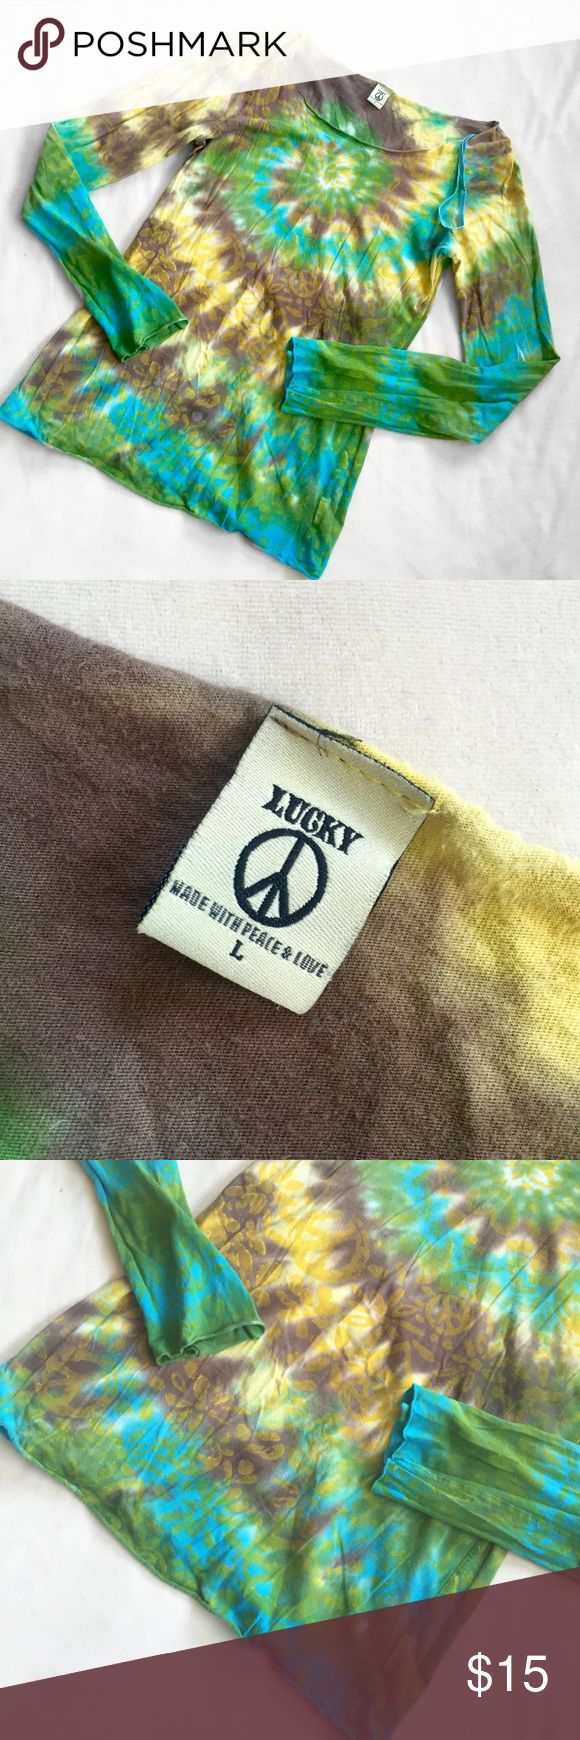 "Lucky Brand Peace & Love Tie Dye Long Sleeve Top Lucky Brand • Size Large • 100% cotton • Turquoise, chestnut brown, green, and pastel yellow tie dye with yellow flower and peace sign patterns printed on top • Raw hems • Armpit to armpit: approx. 18.5"" straight across. Sleeve inseam: 20.5"" long. • Minor pilling from wear, but no major damage. Tiny, tiny little stain, but it's barely noticeable due to the pattern (shown in last photo) Lucky Brand Tops Tees - Long Sleeve"